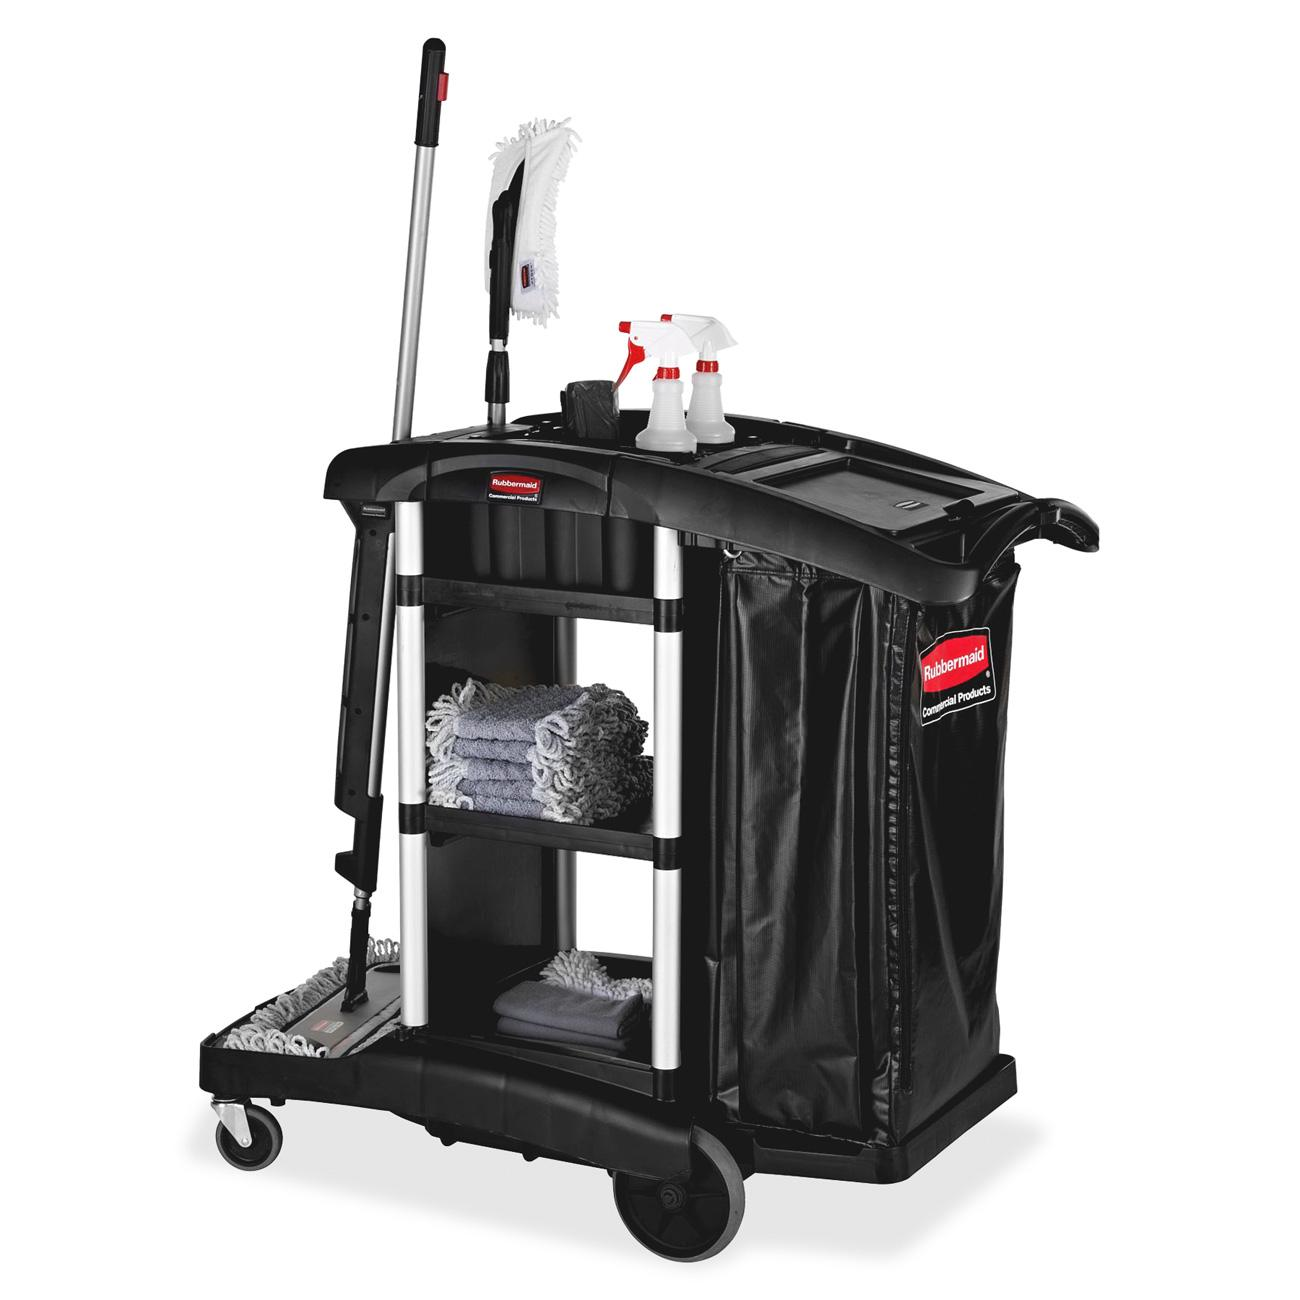 Rubbermaid Commercial Executive Janitorial Cleaning